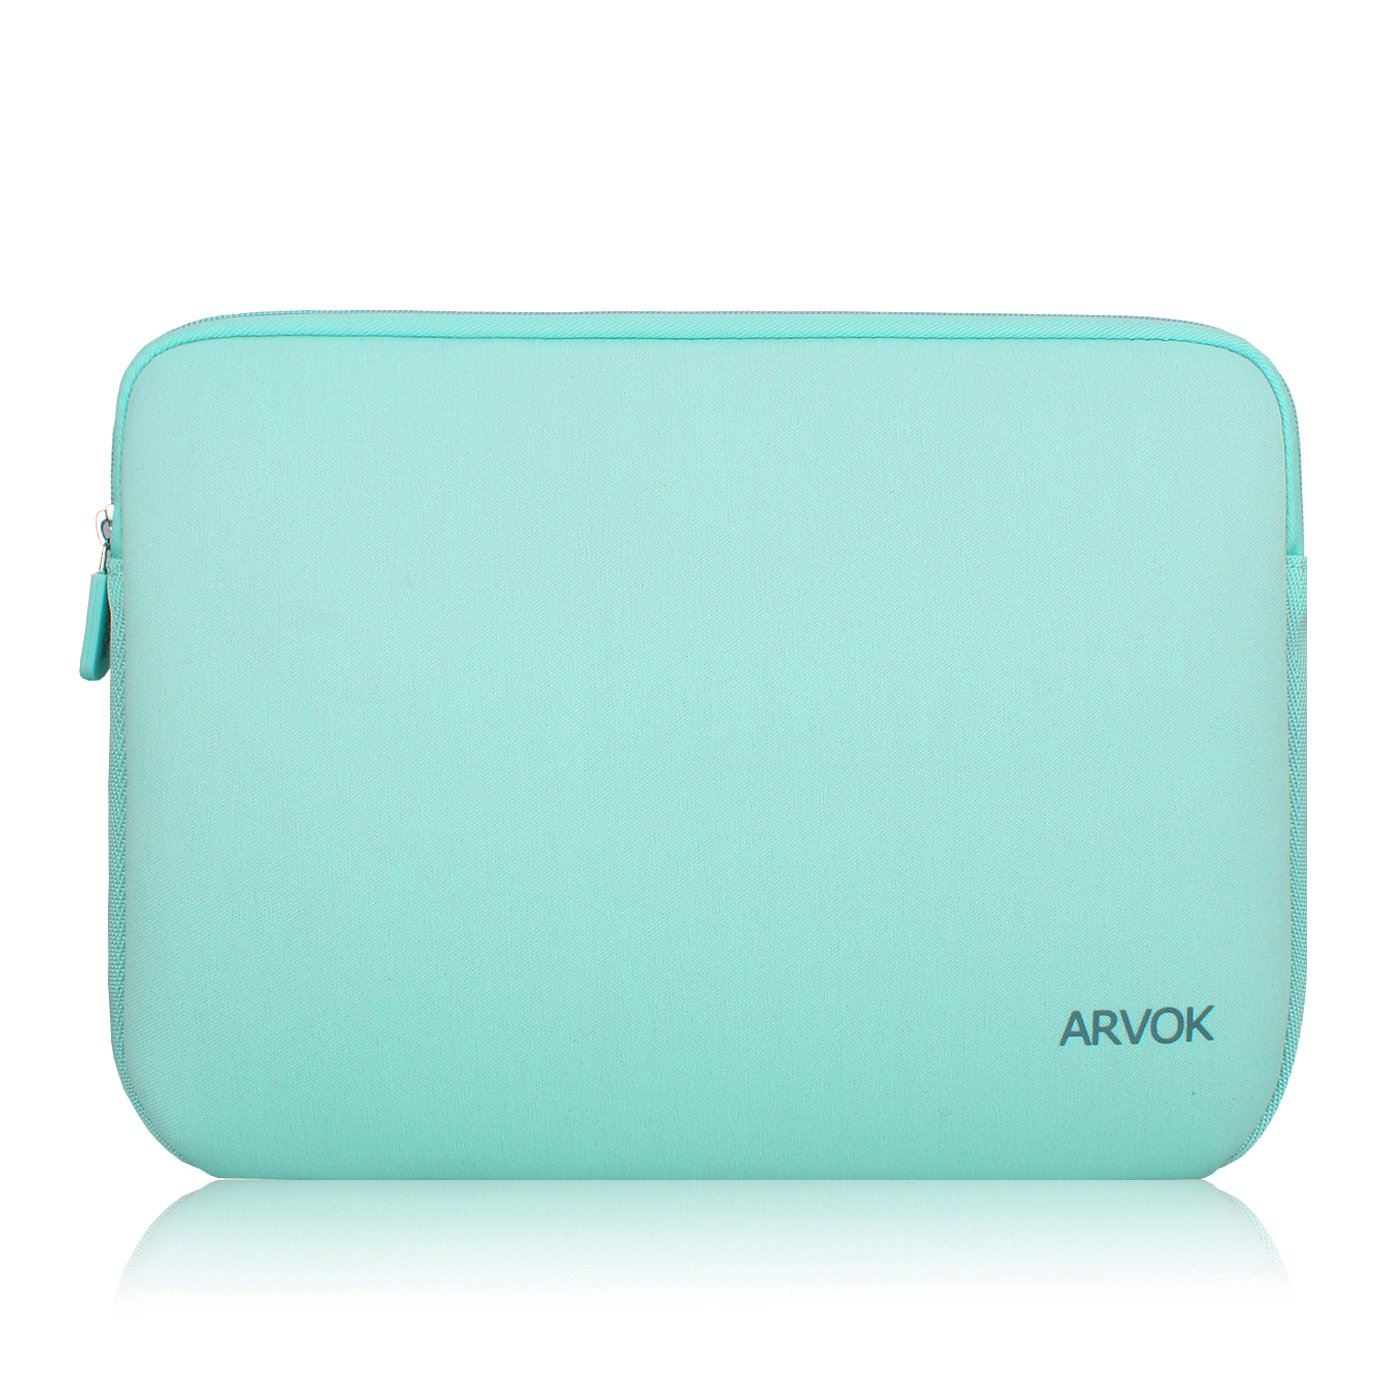 Arvok 13-14 Inch Laptop Sleeve Multi-color & Size Choices Case/Water-resistant Neoprene Notebook Computer Tablet Carrying Bag Cover, Light Green